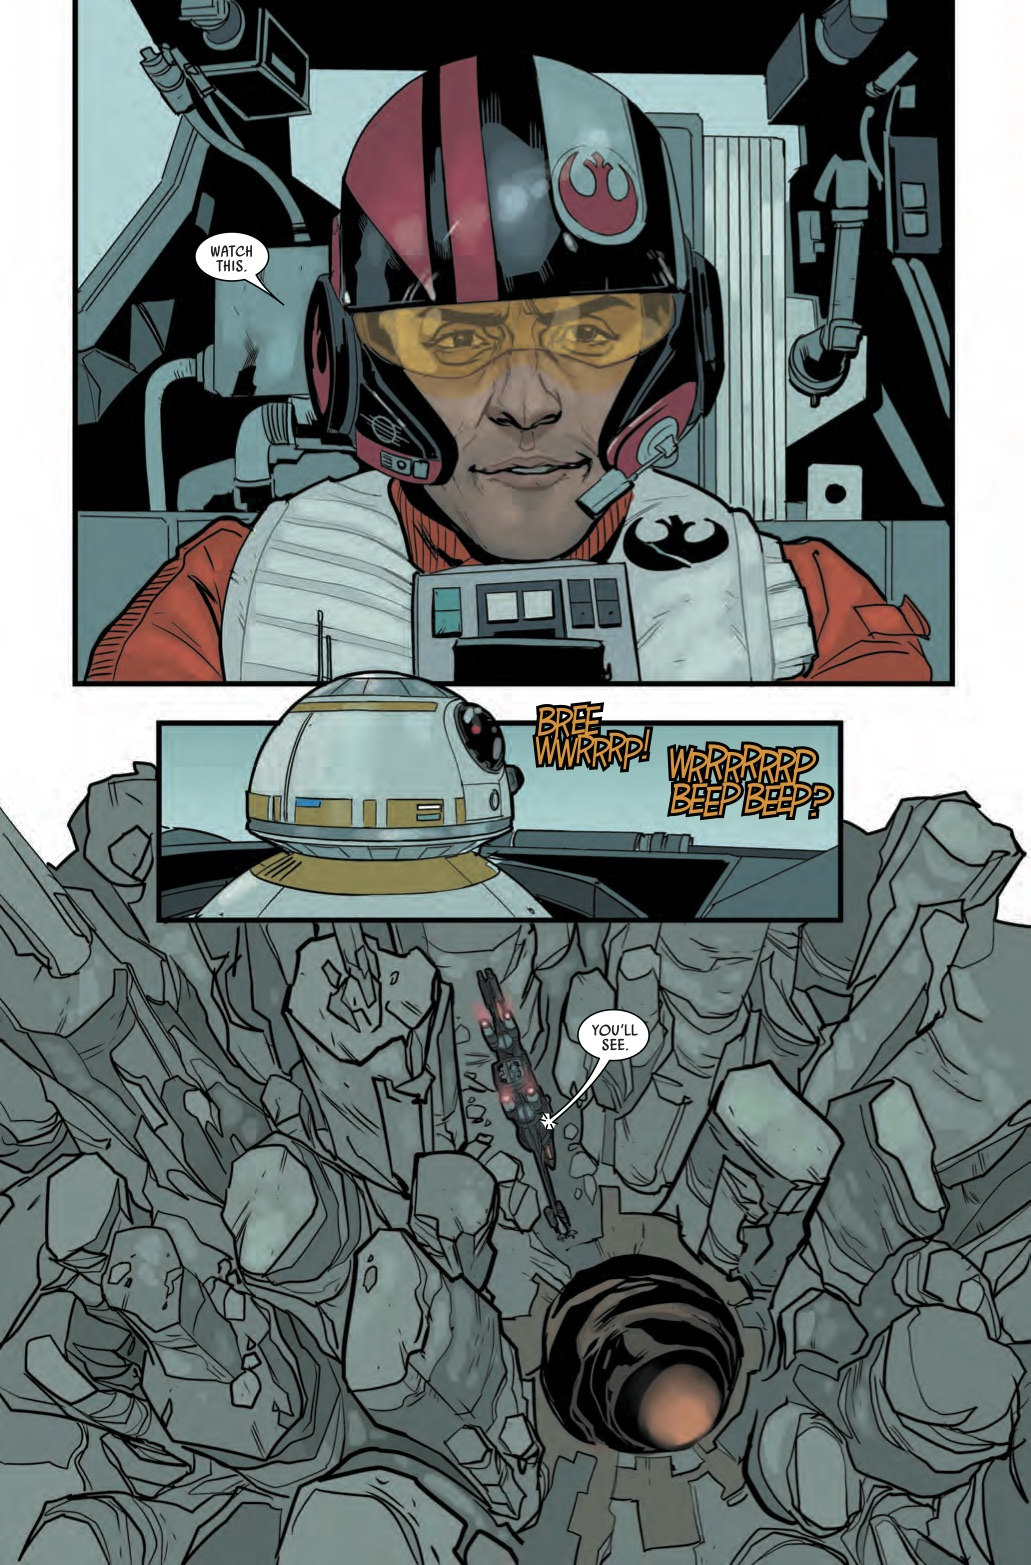 Go Inside Star Wars: Poe Dameron #1 with Artist Phil Noto